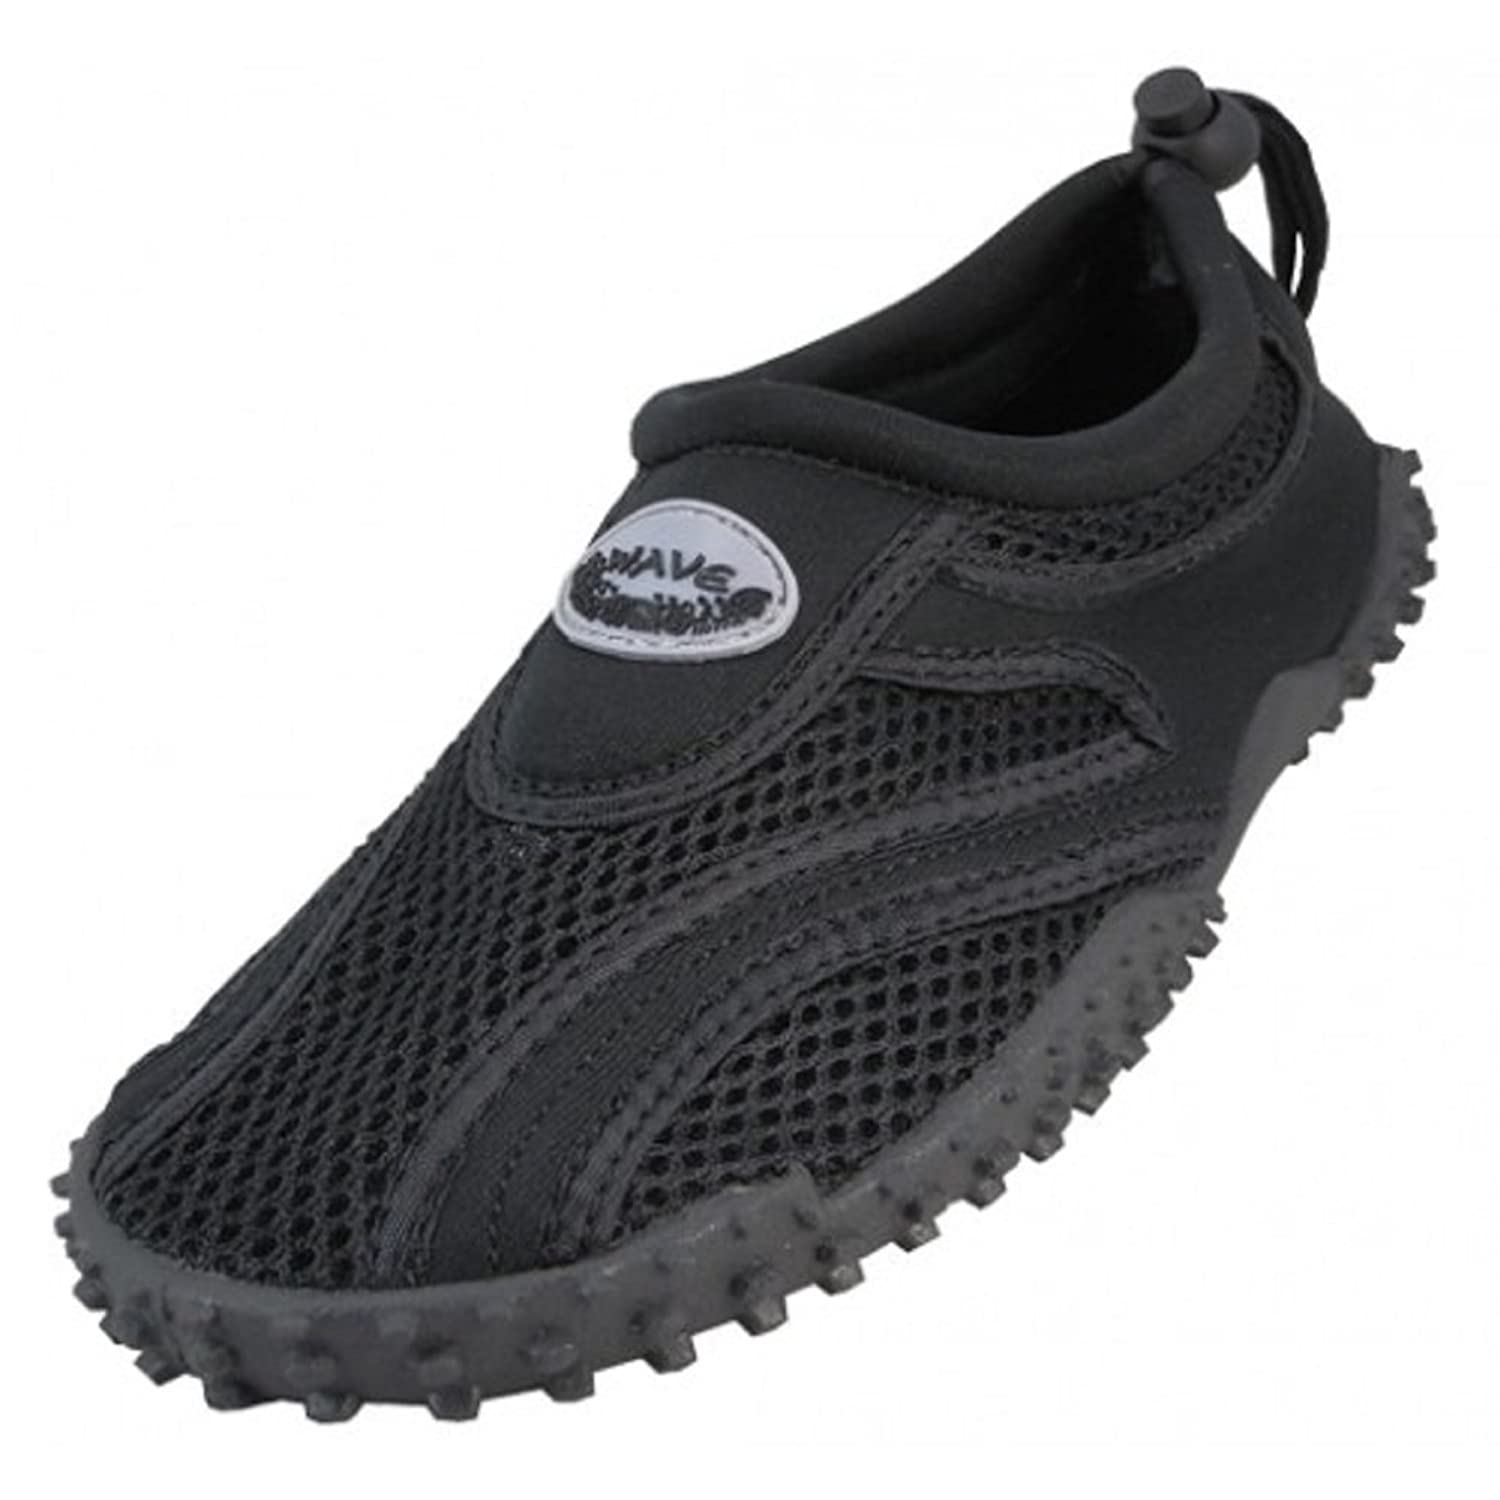 The Wave Men's Waterproof Water Shoes